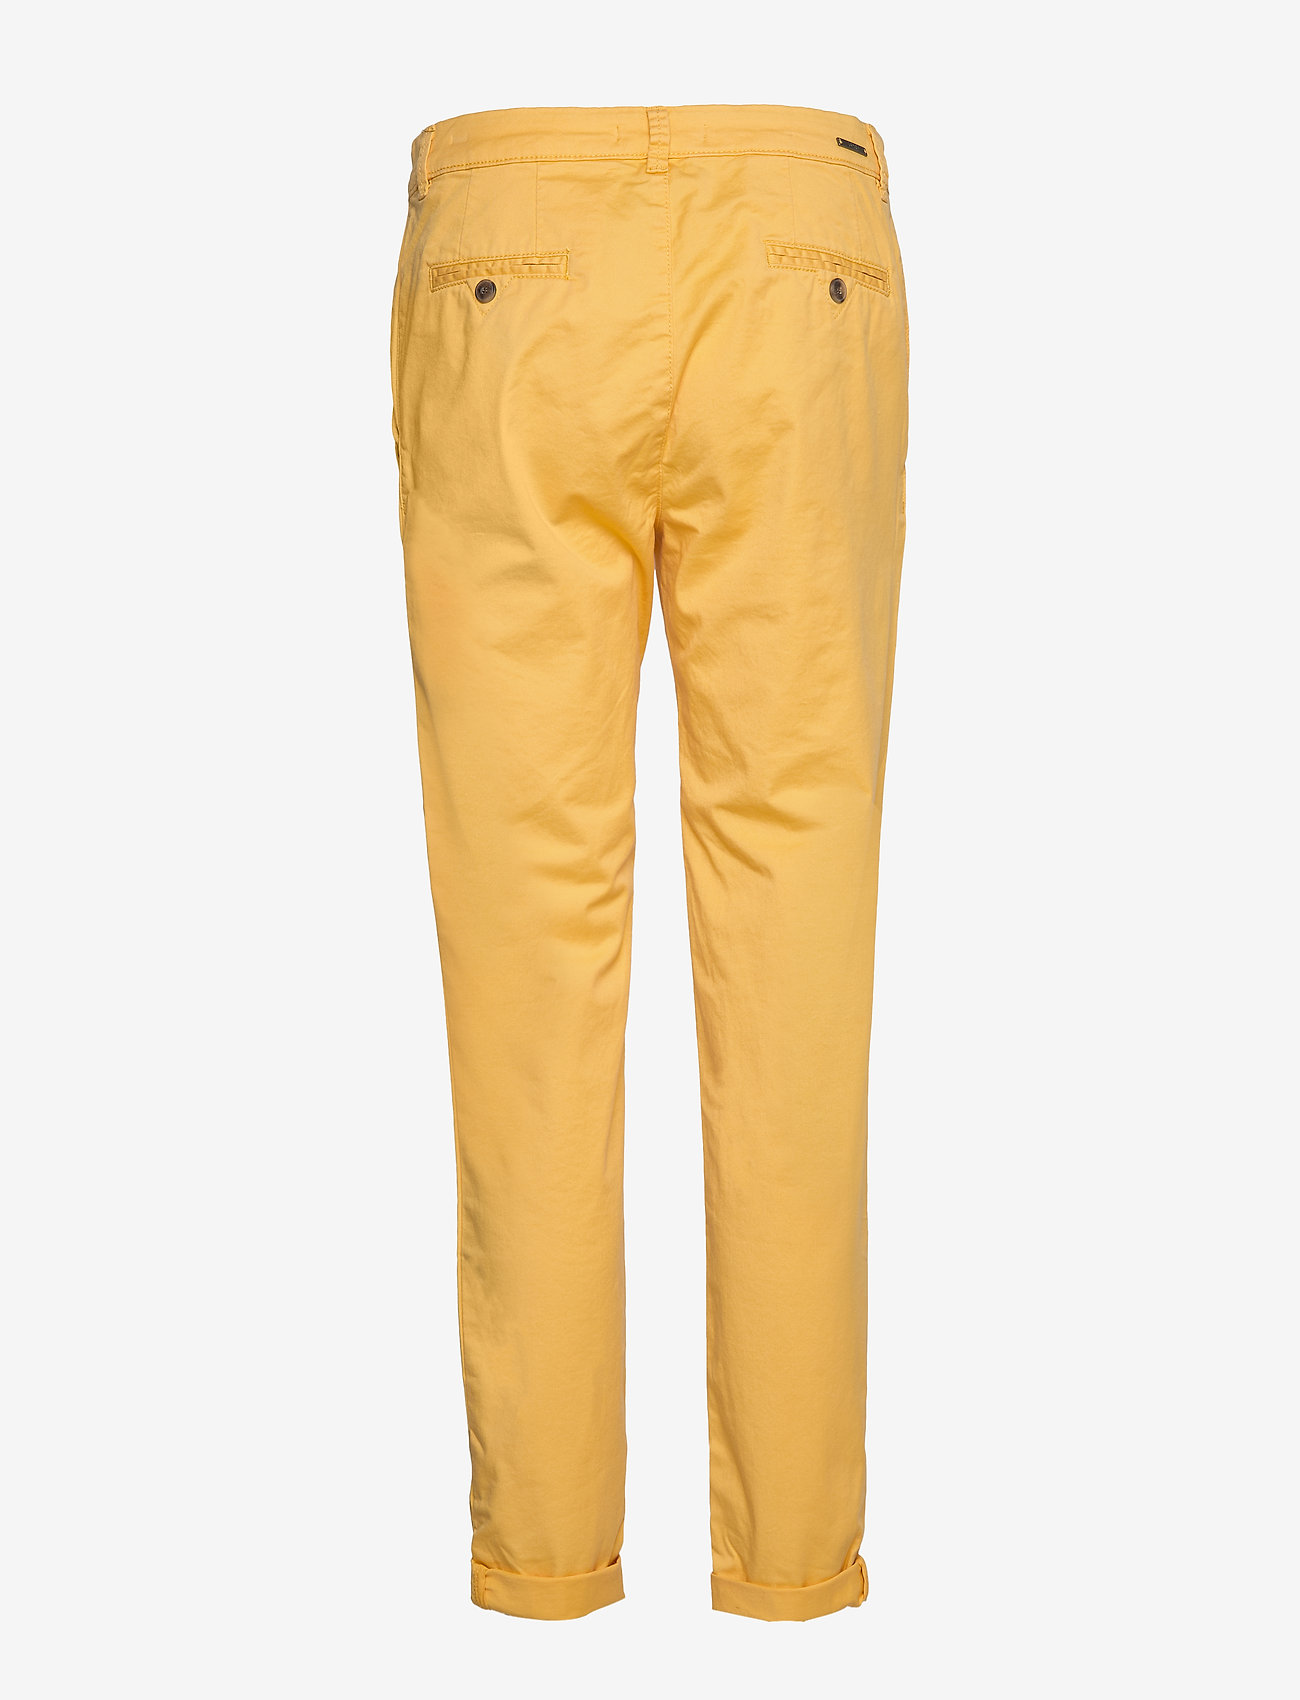 Esprit Casual - Pants woven - chinos - yellow - 1